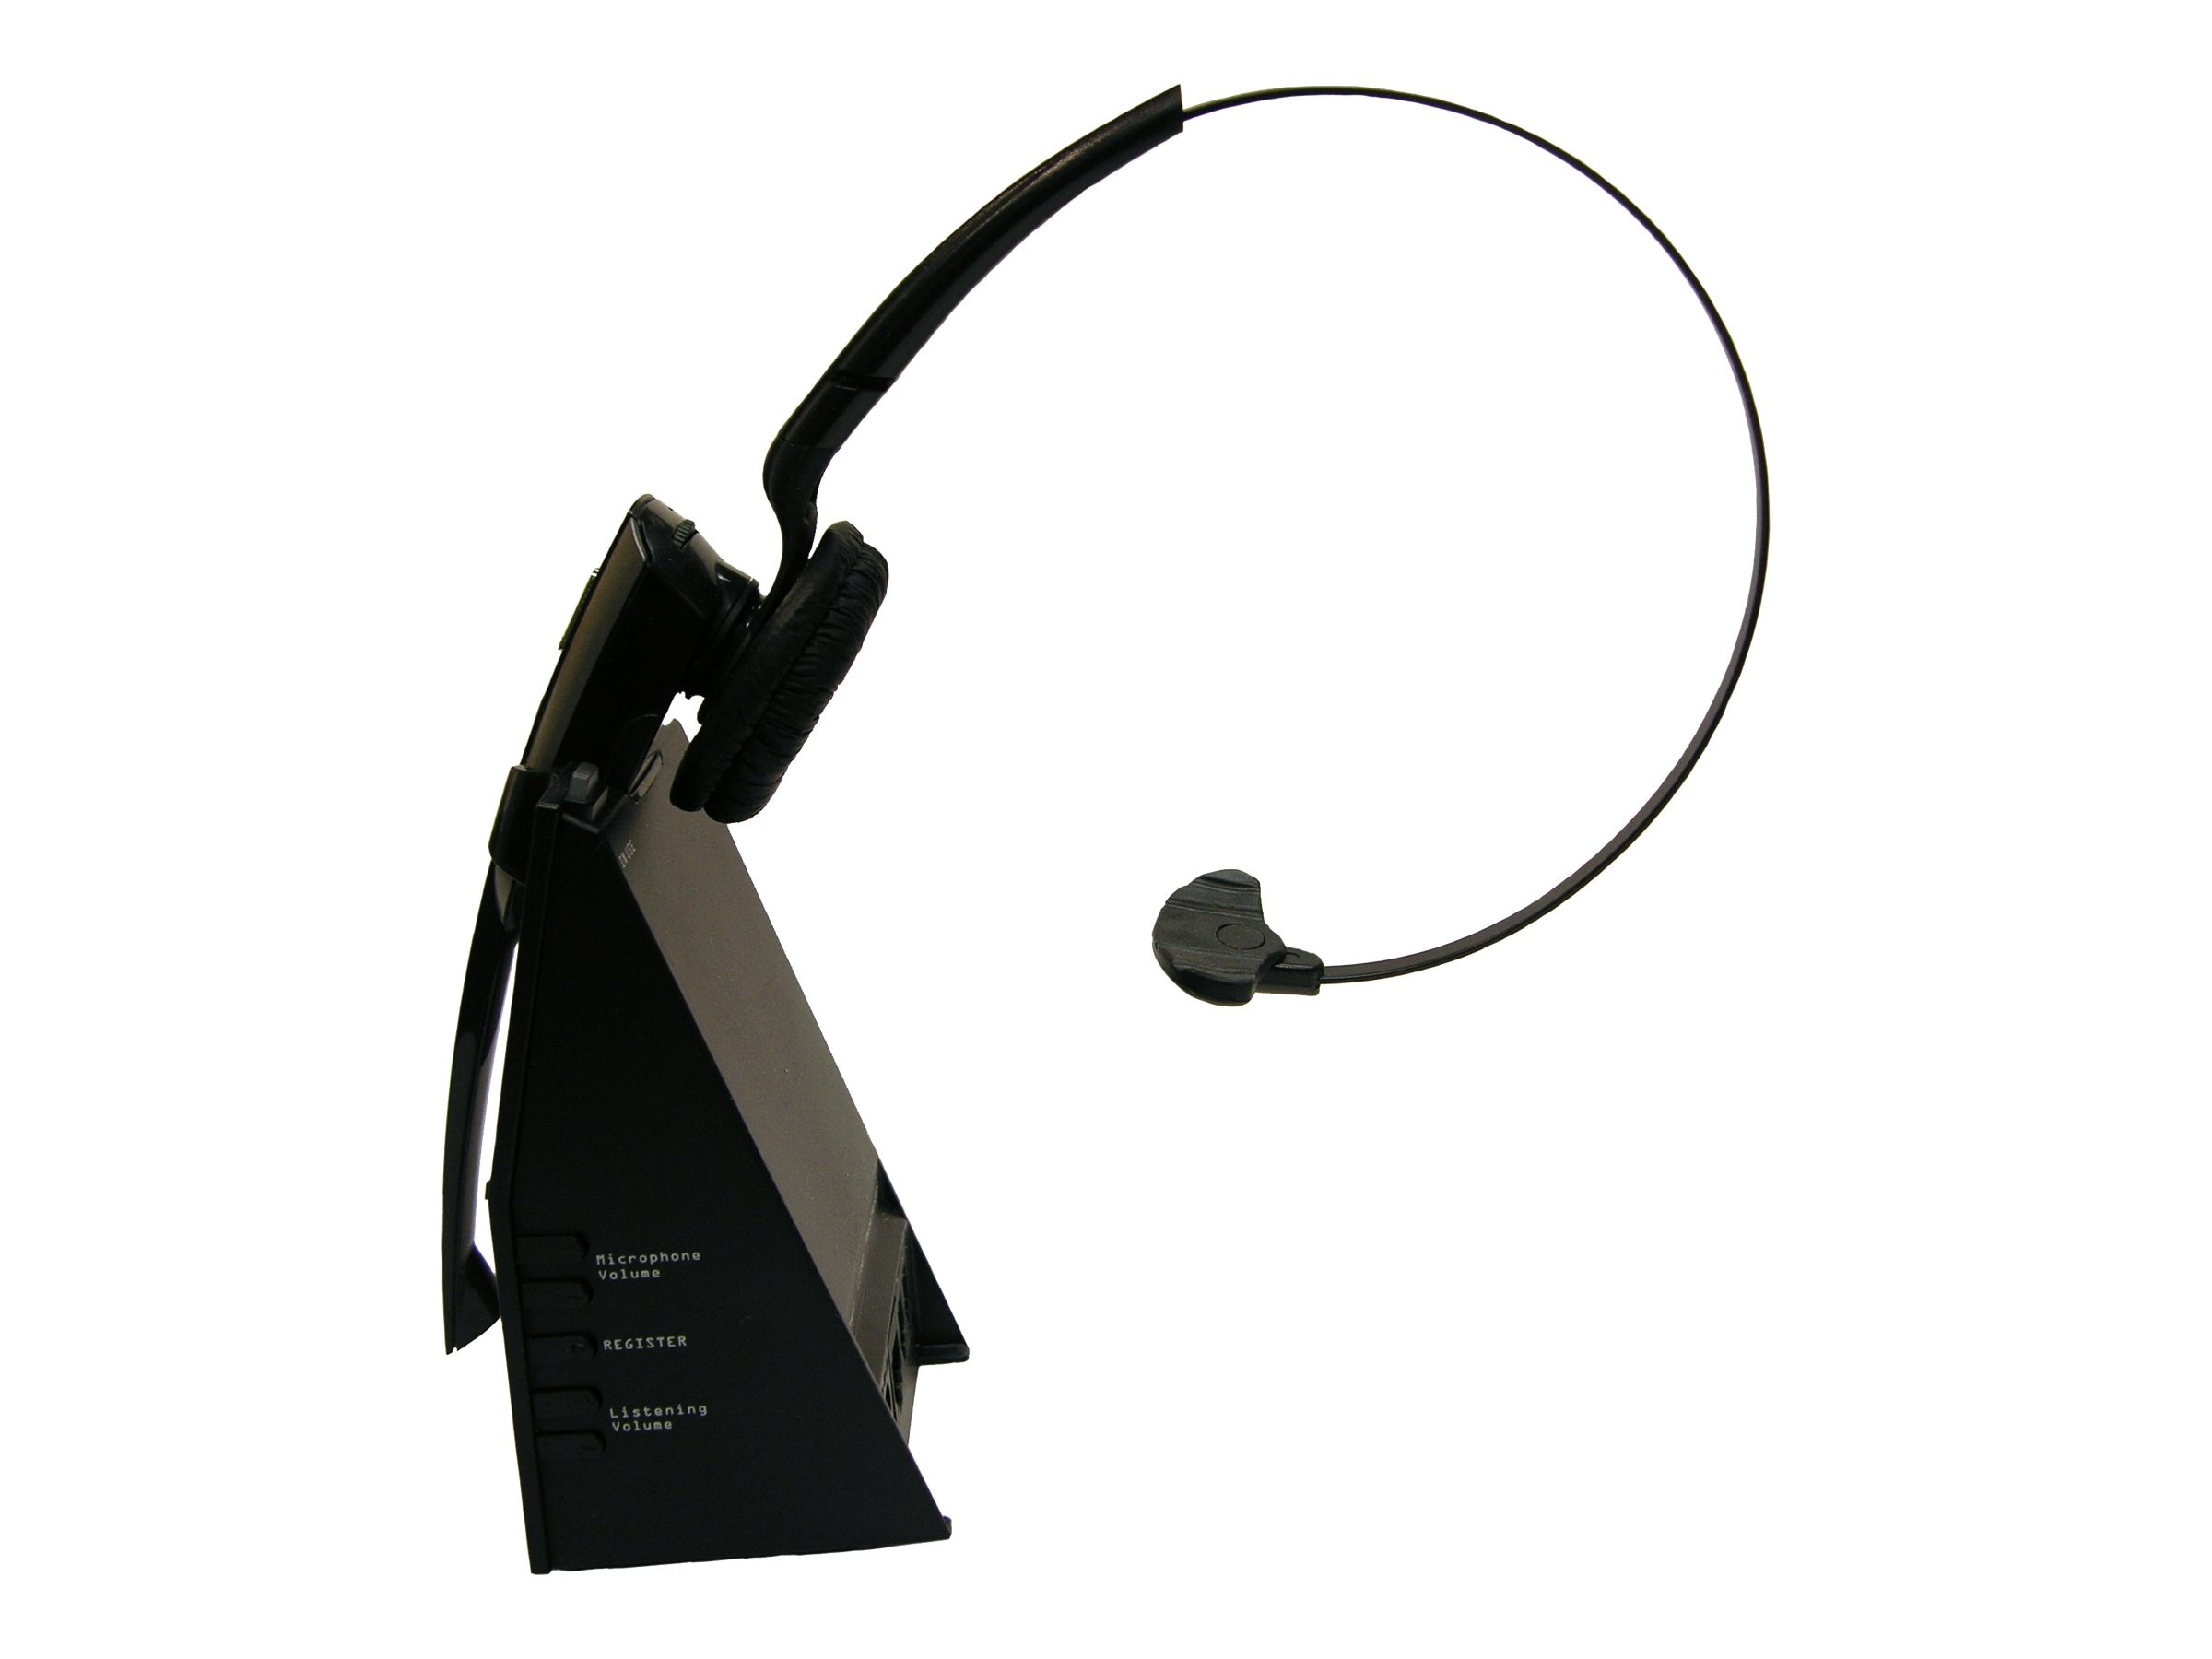 Spracht ZUM DECT 6.0 Headset with Base Station, HS-2012